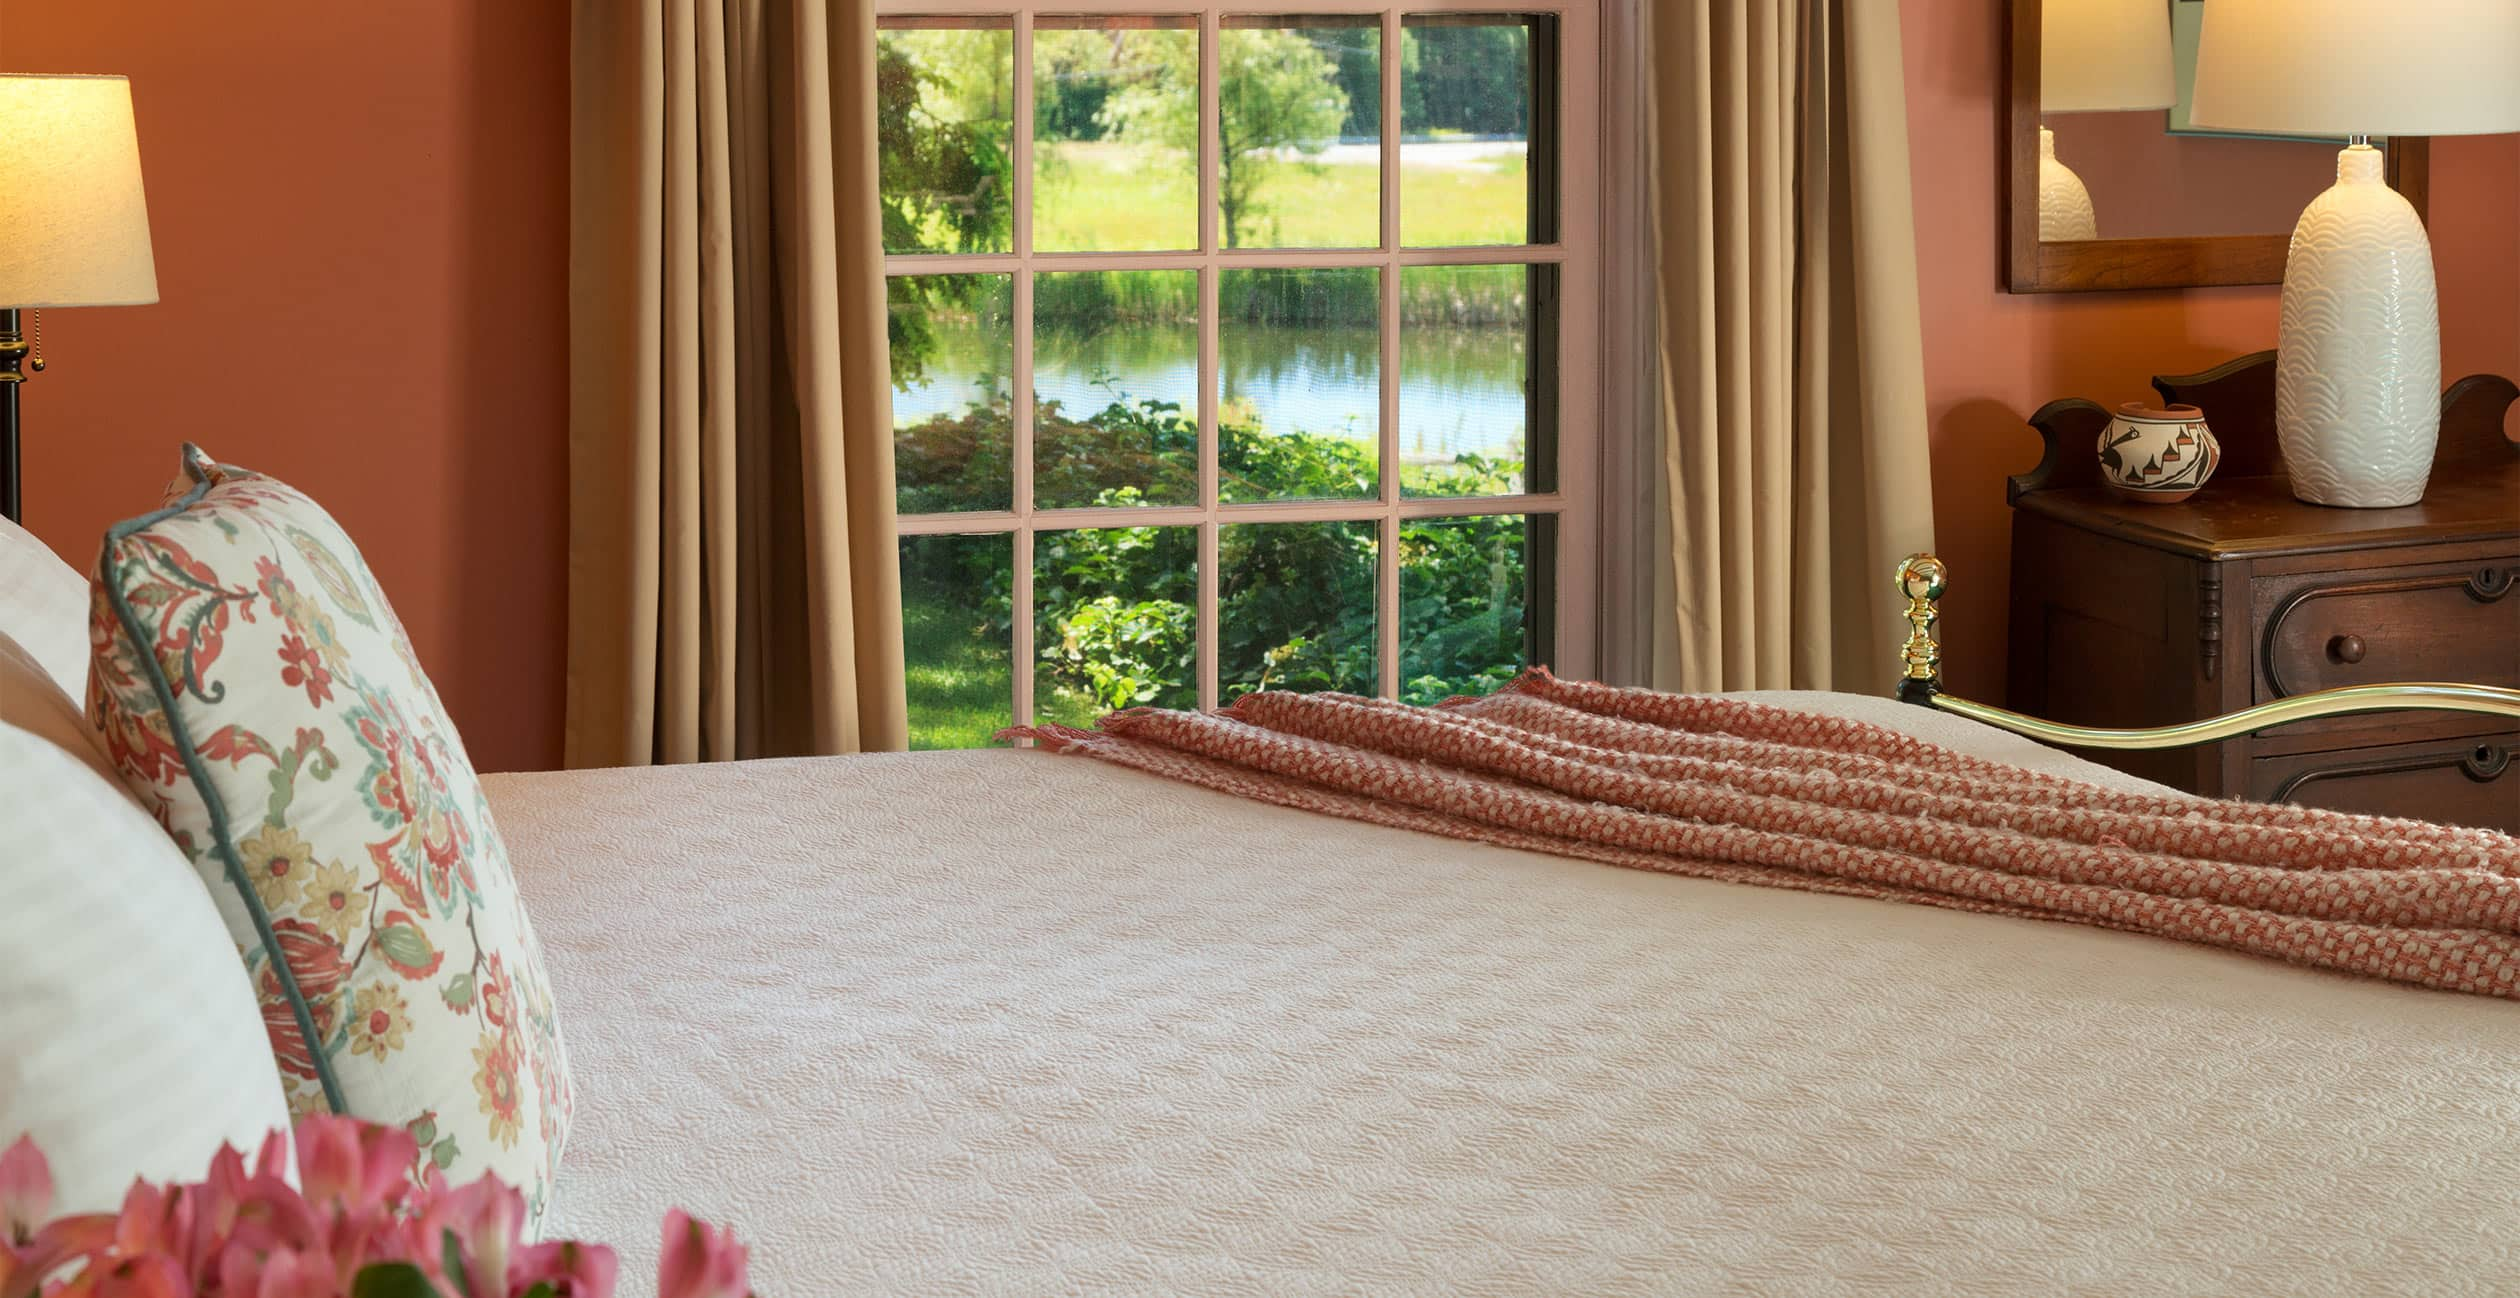 Bed with a garden view